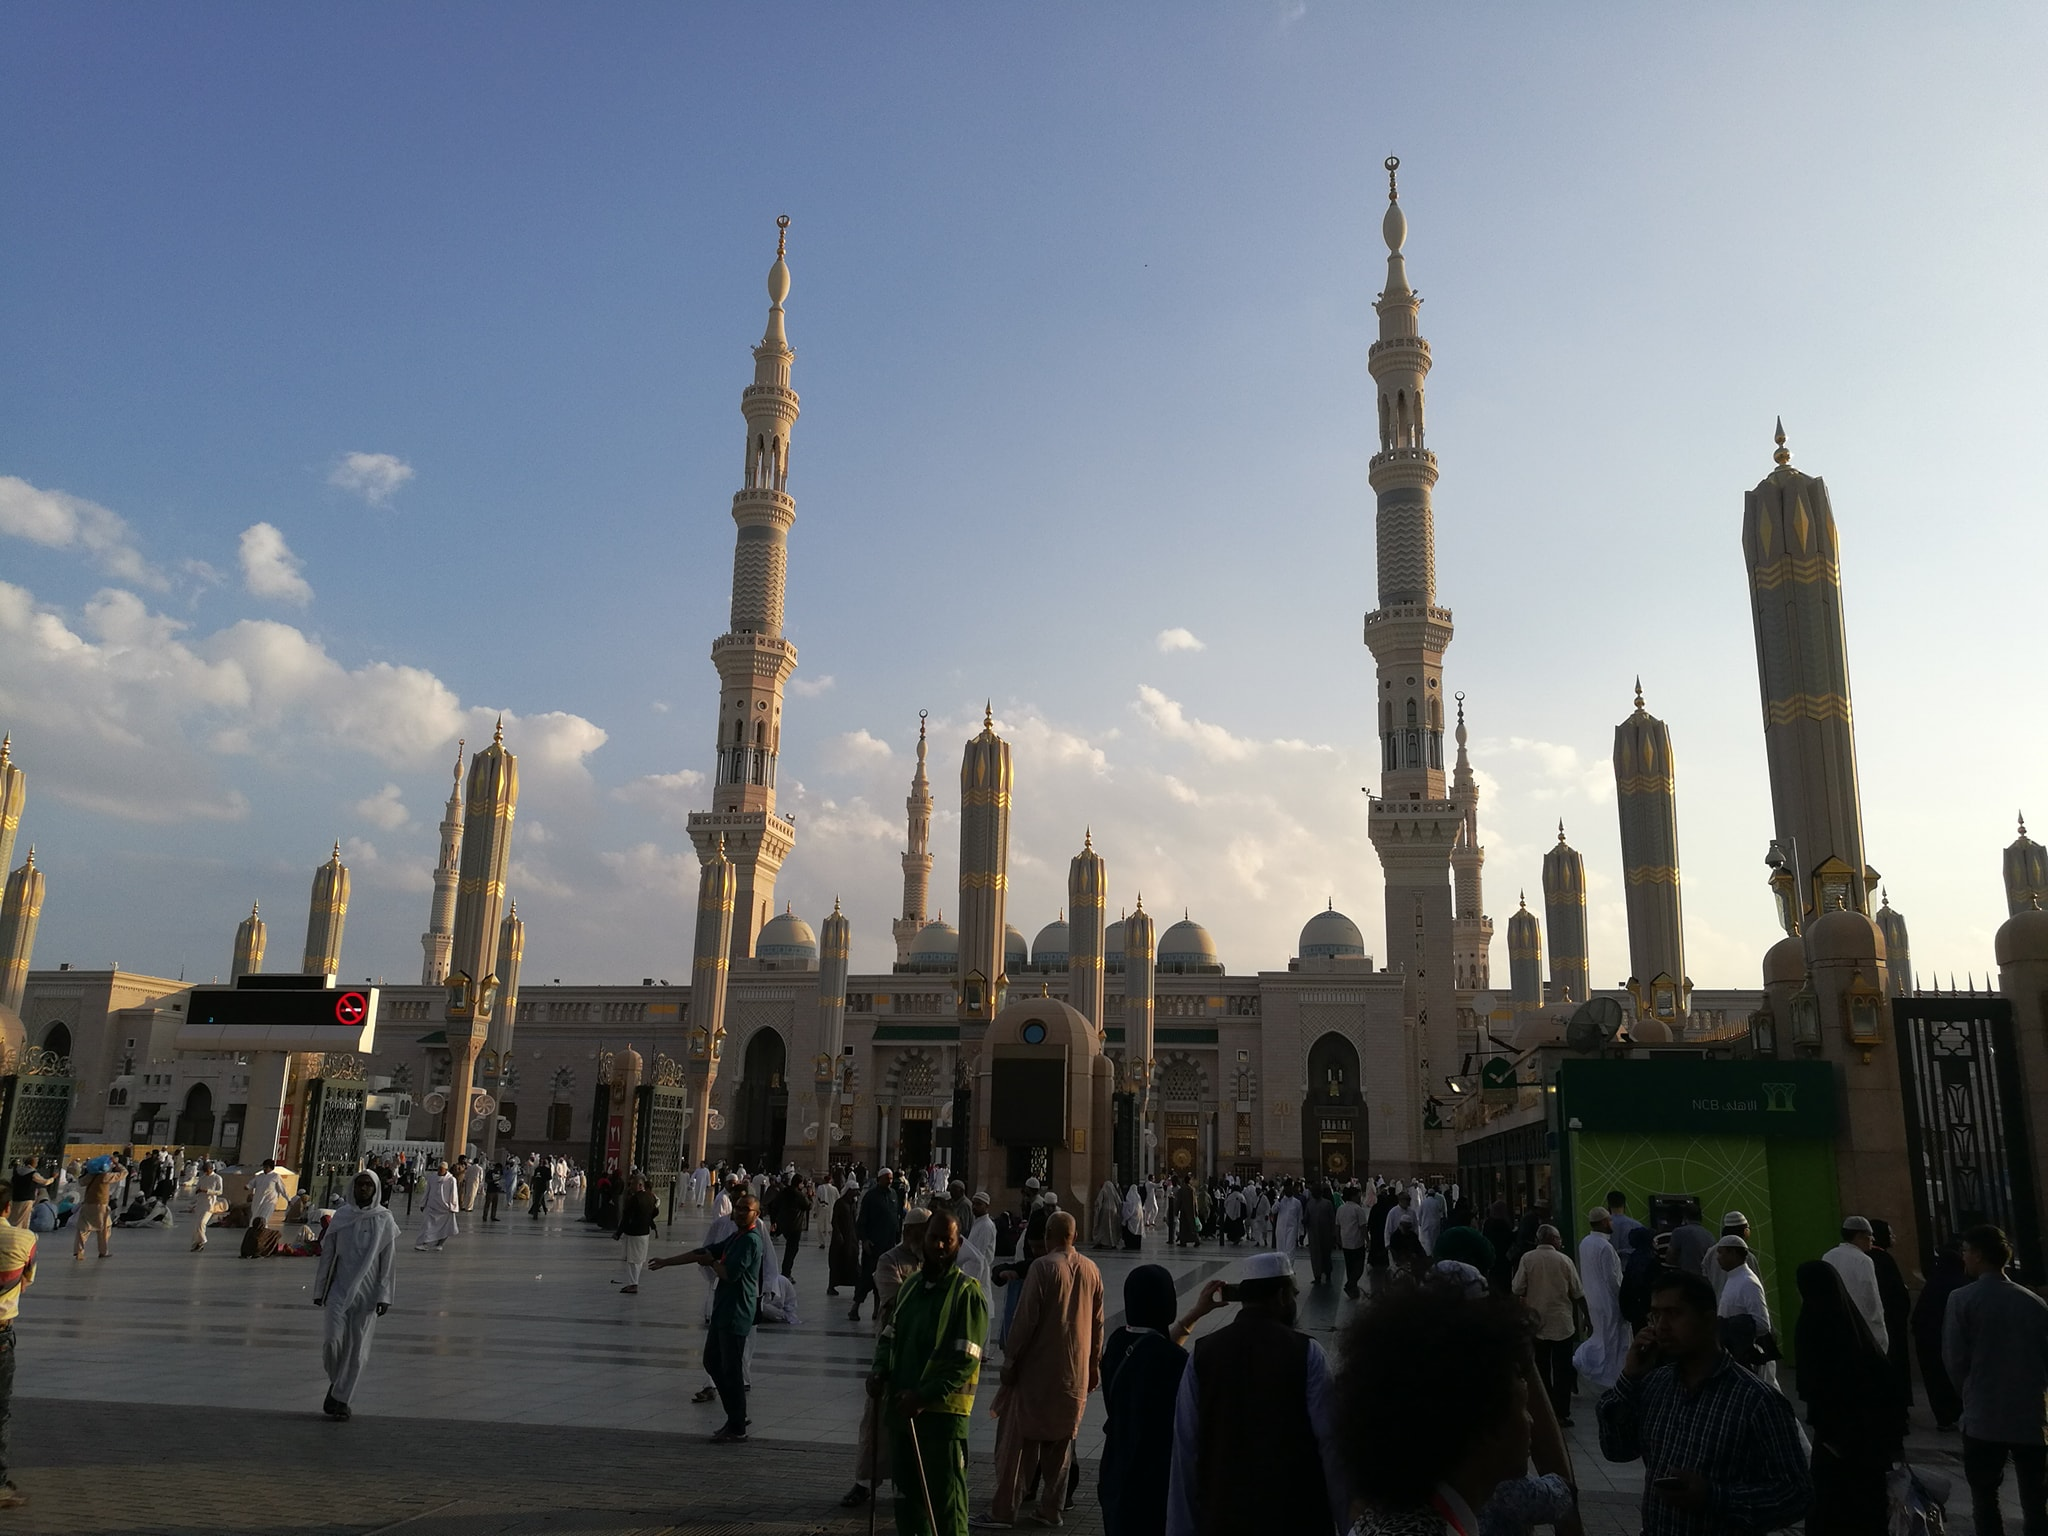 Looks so beautiful when you entire in Masjid Nabawi